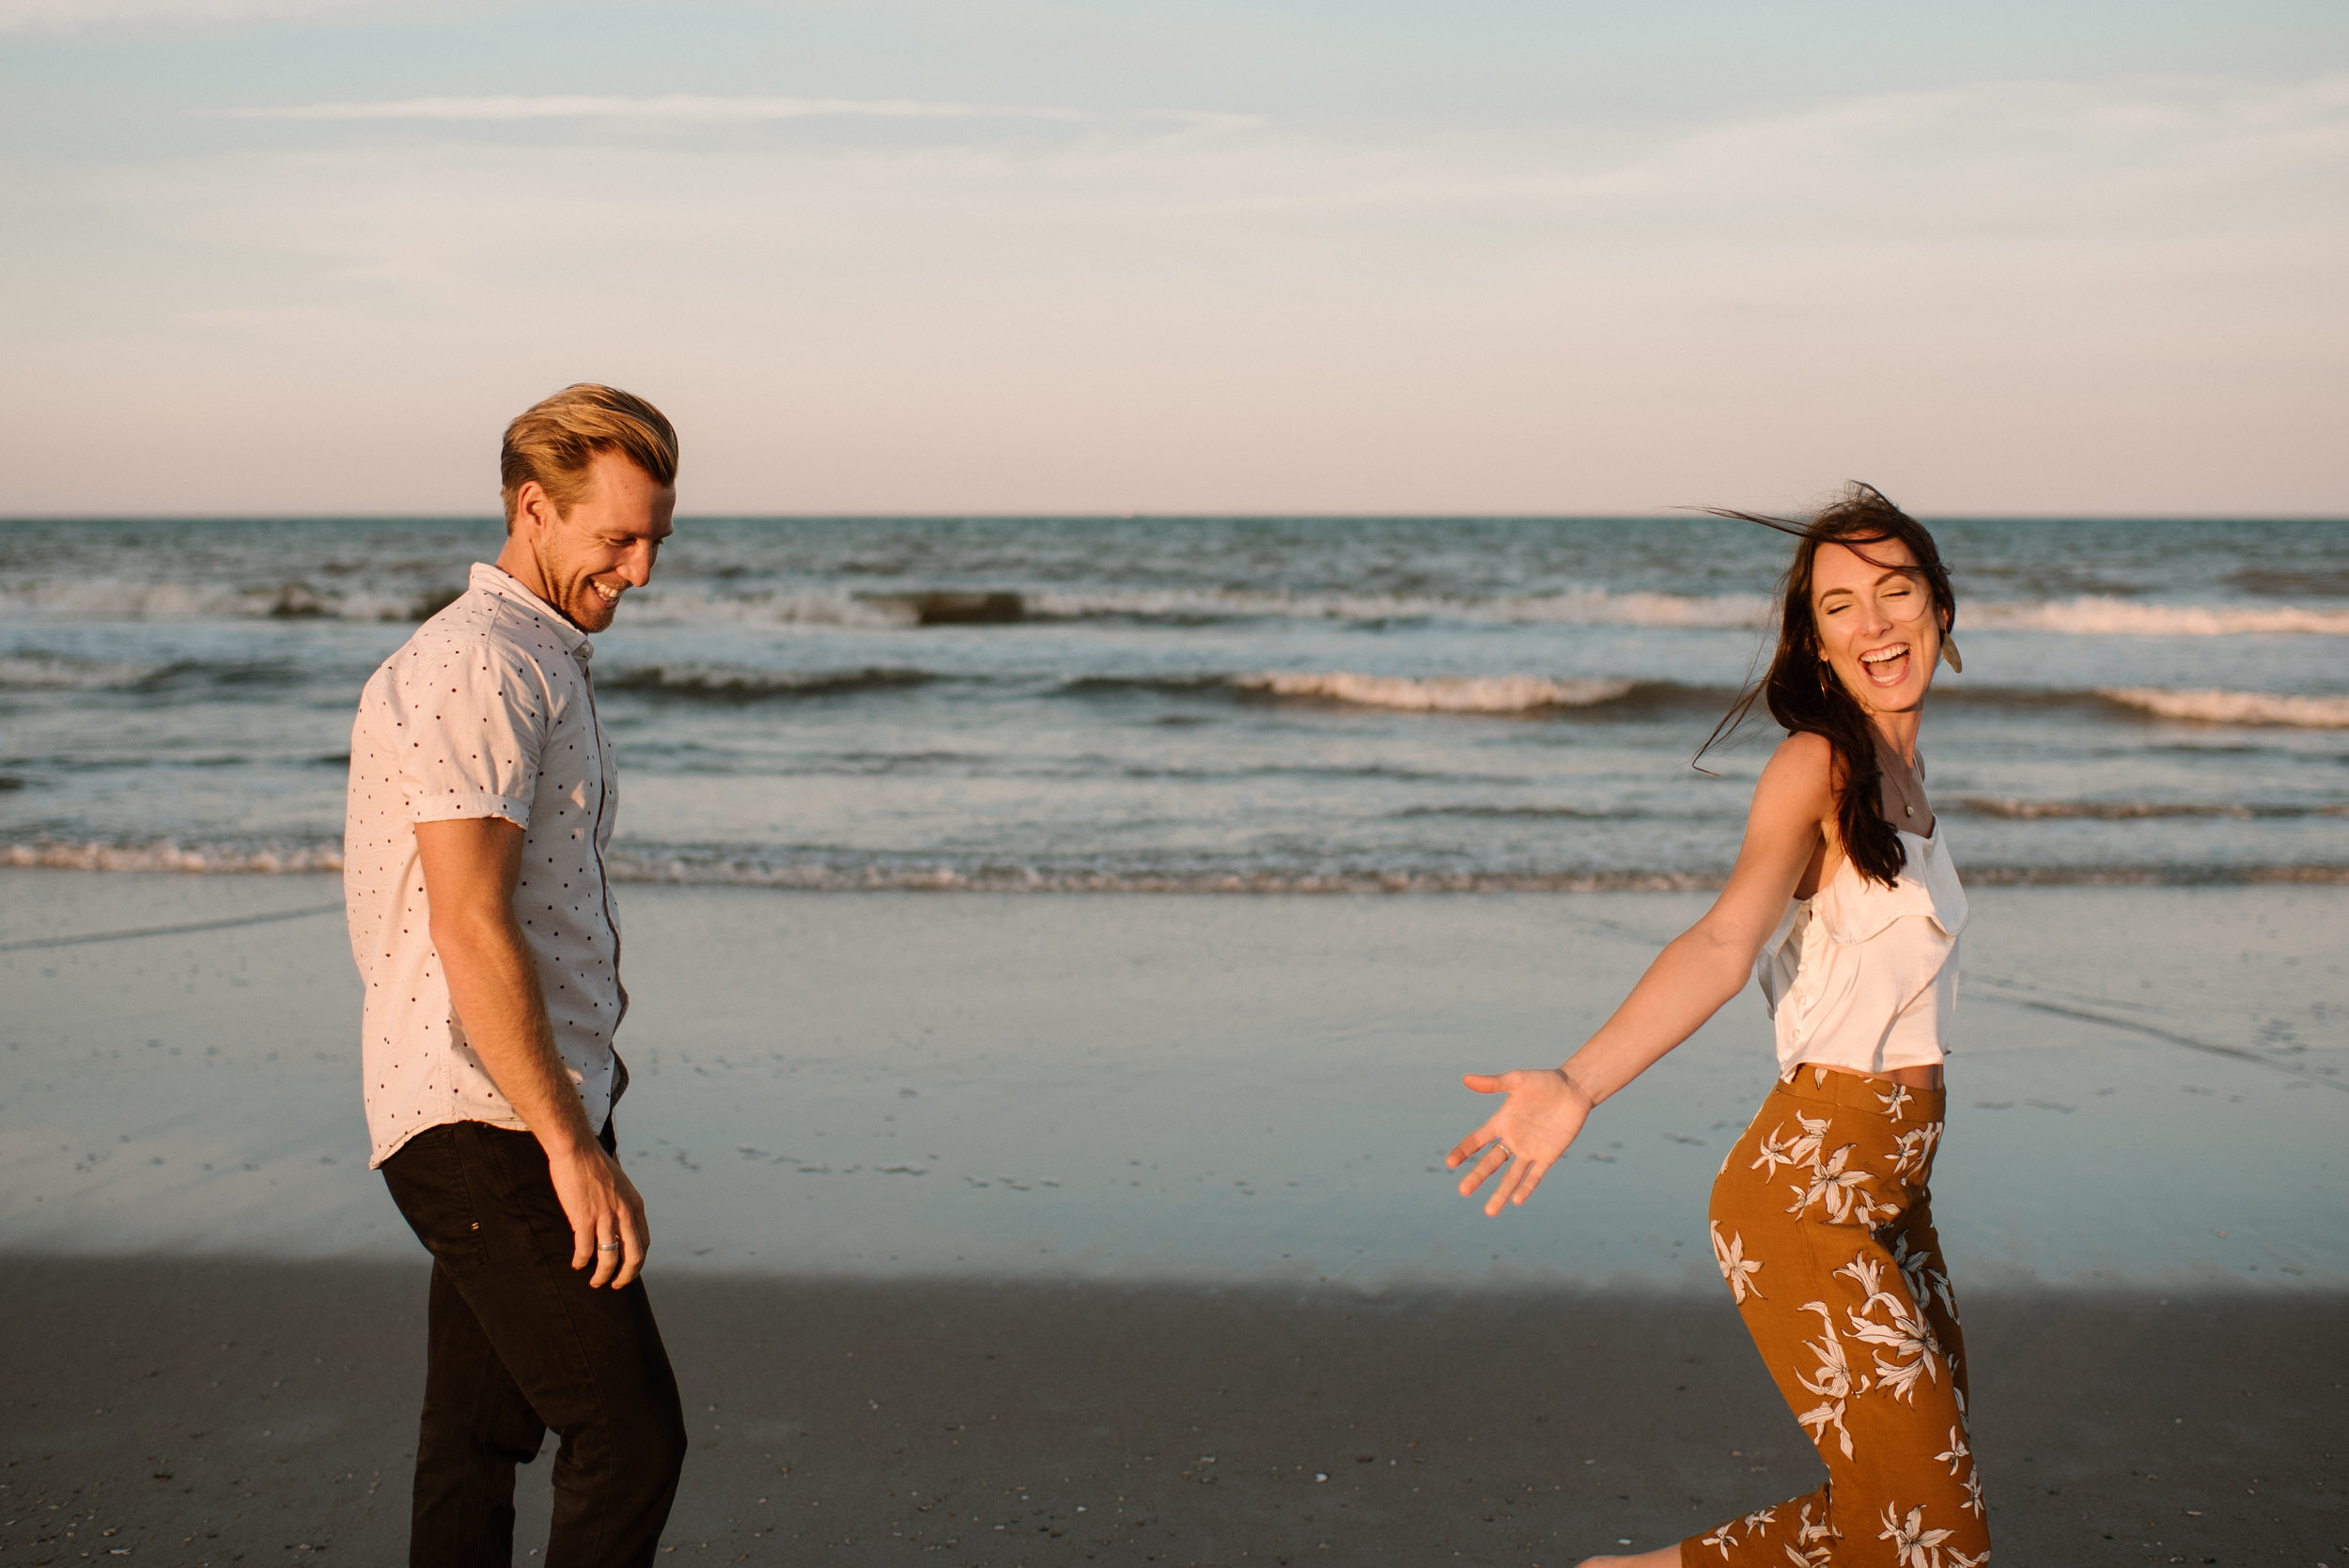 atlantic-beach-engagement-photos-heather-and-cody-107.jpg